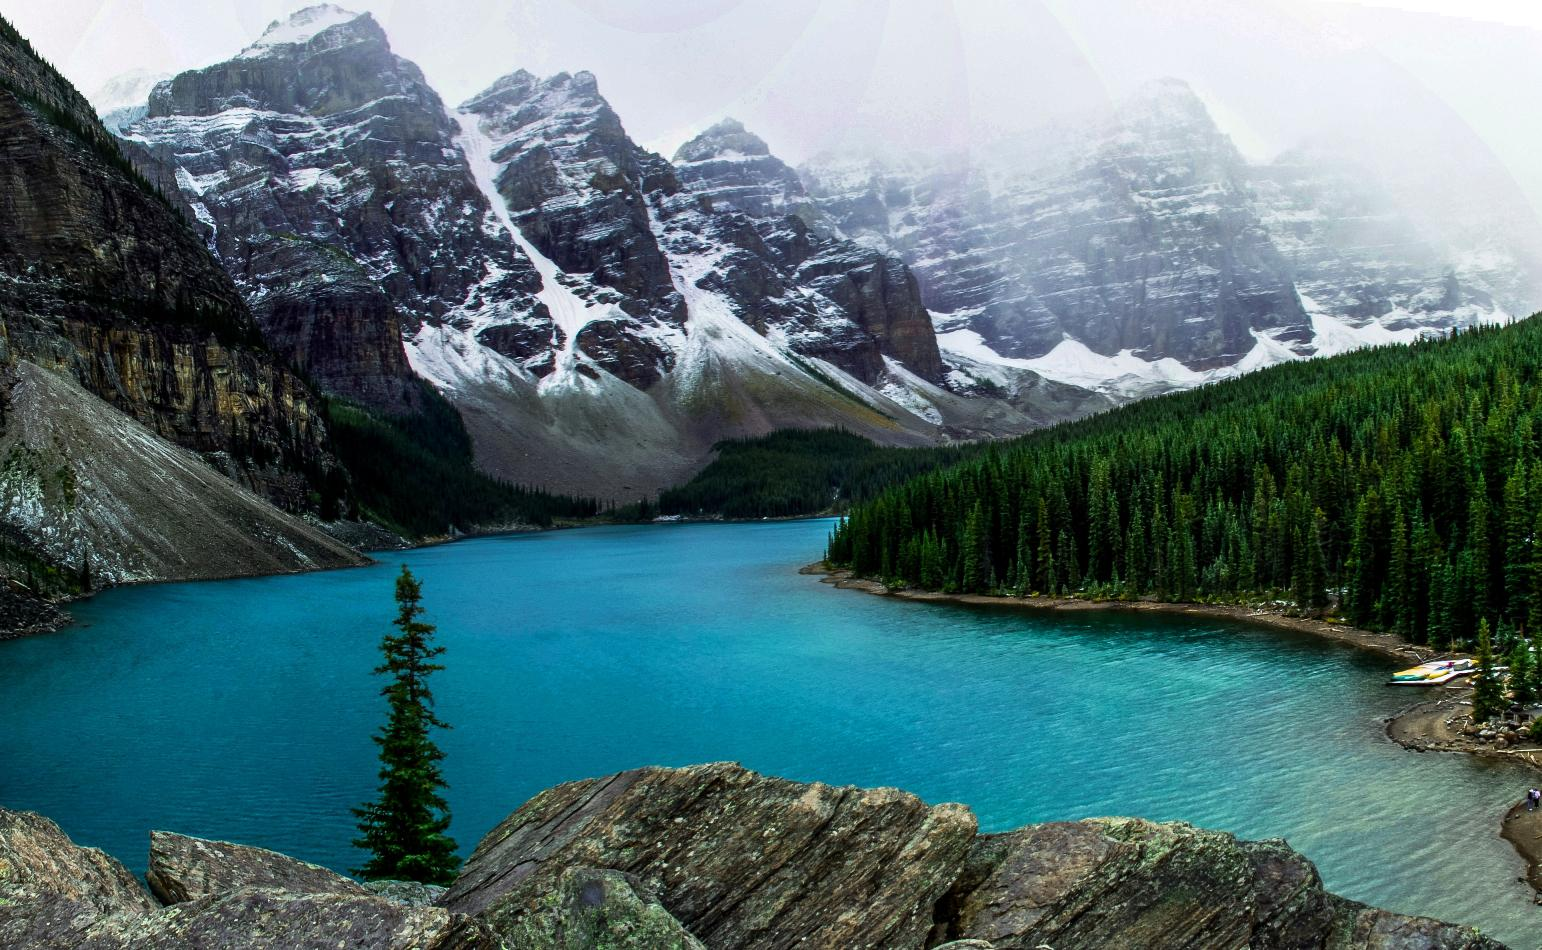 Moraine lake   160119   High Quality and Resolution Wallpapers on 1542x950